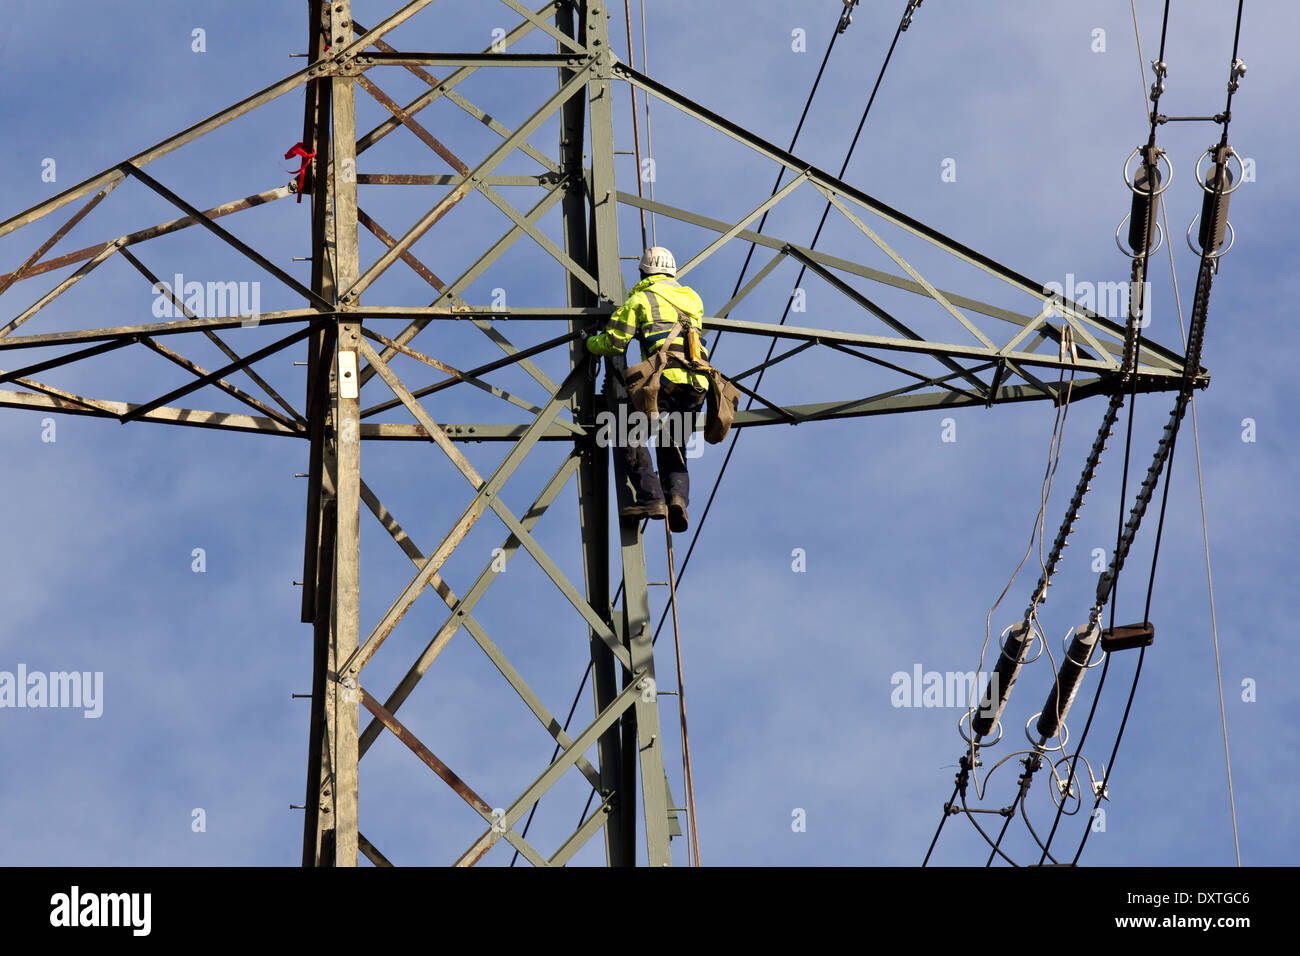 Electrical engineer climbing up an overhead electricity pylon to work on high tension power line repairs - Stock Image